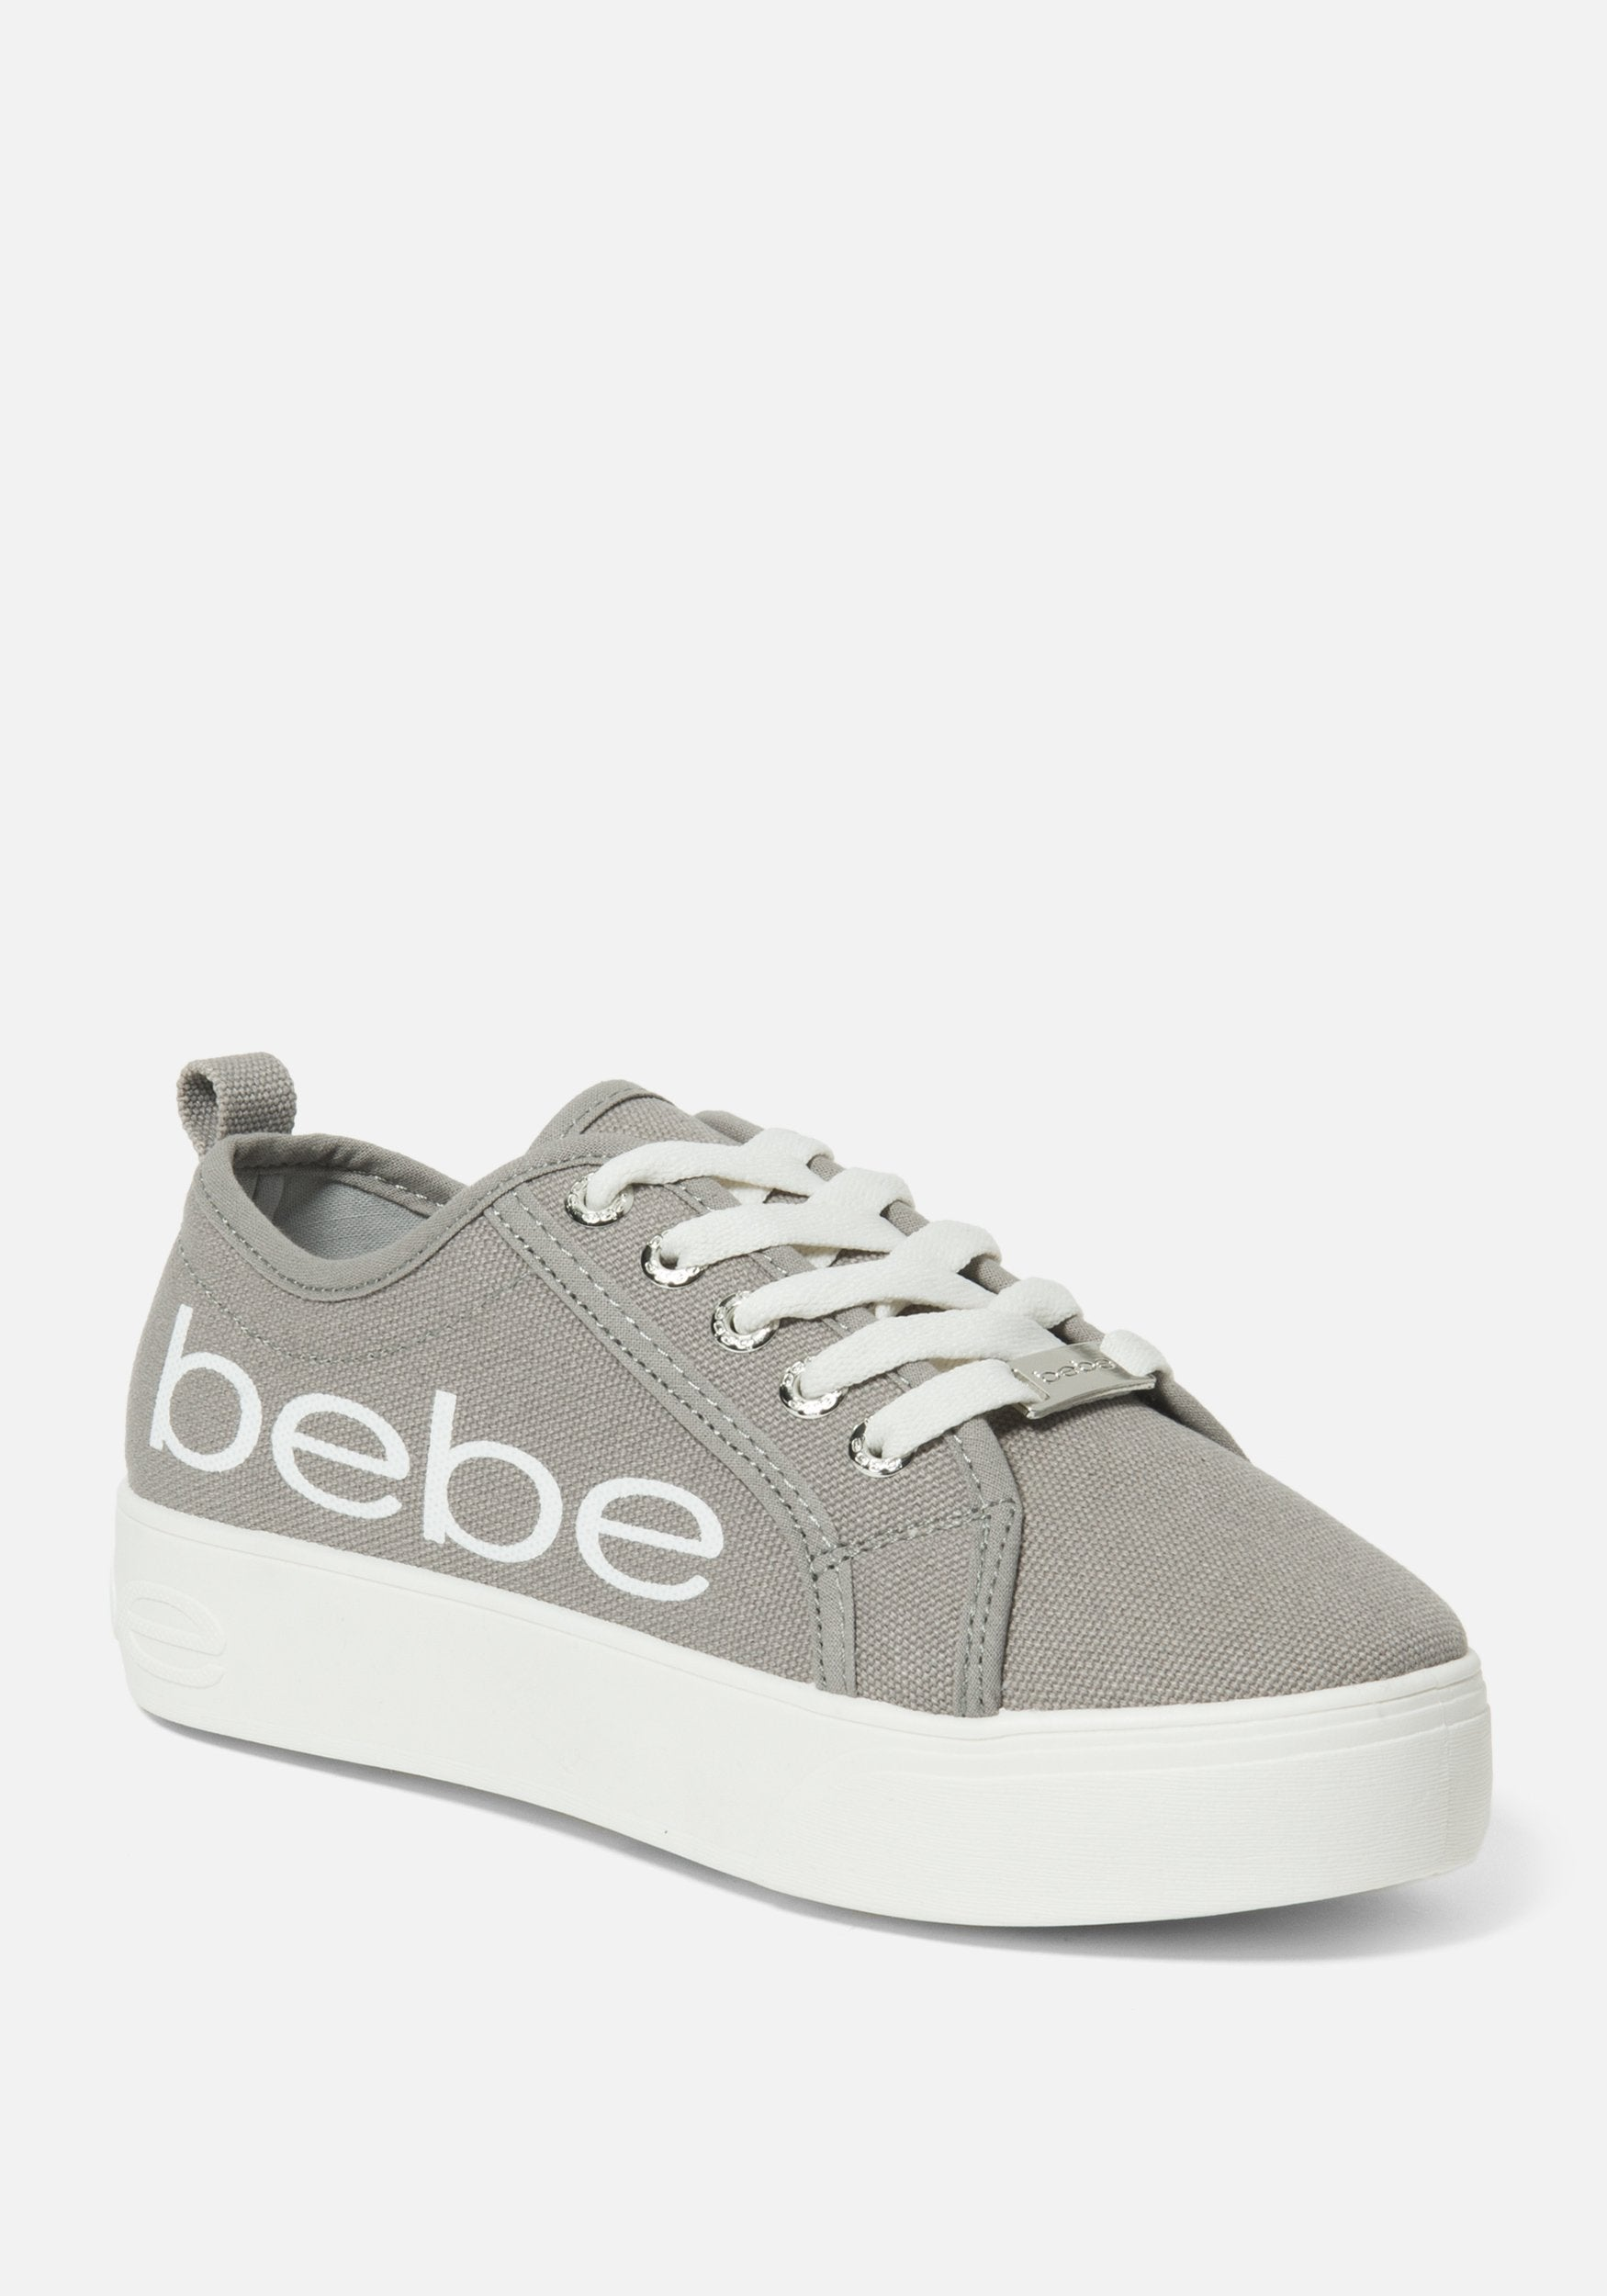 Bebe Women's Destini Platform Sneakers, Size 6 in Grey Synthetic